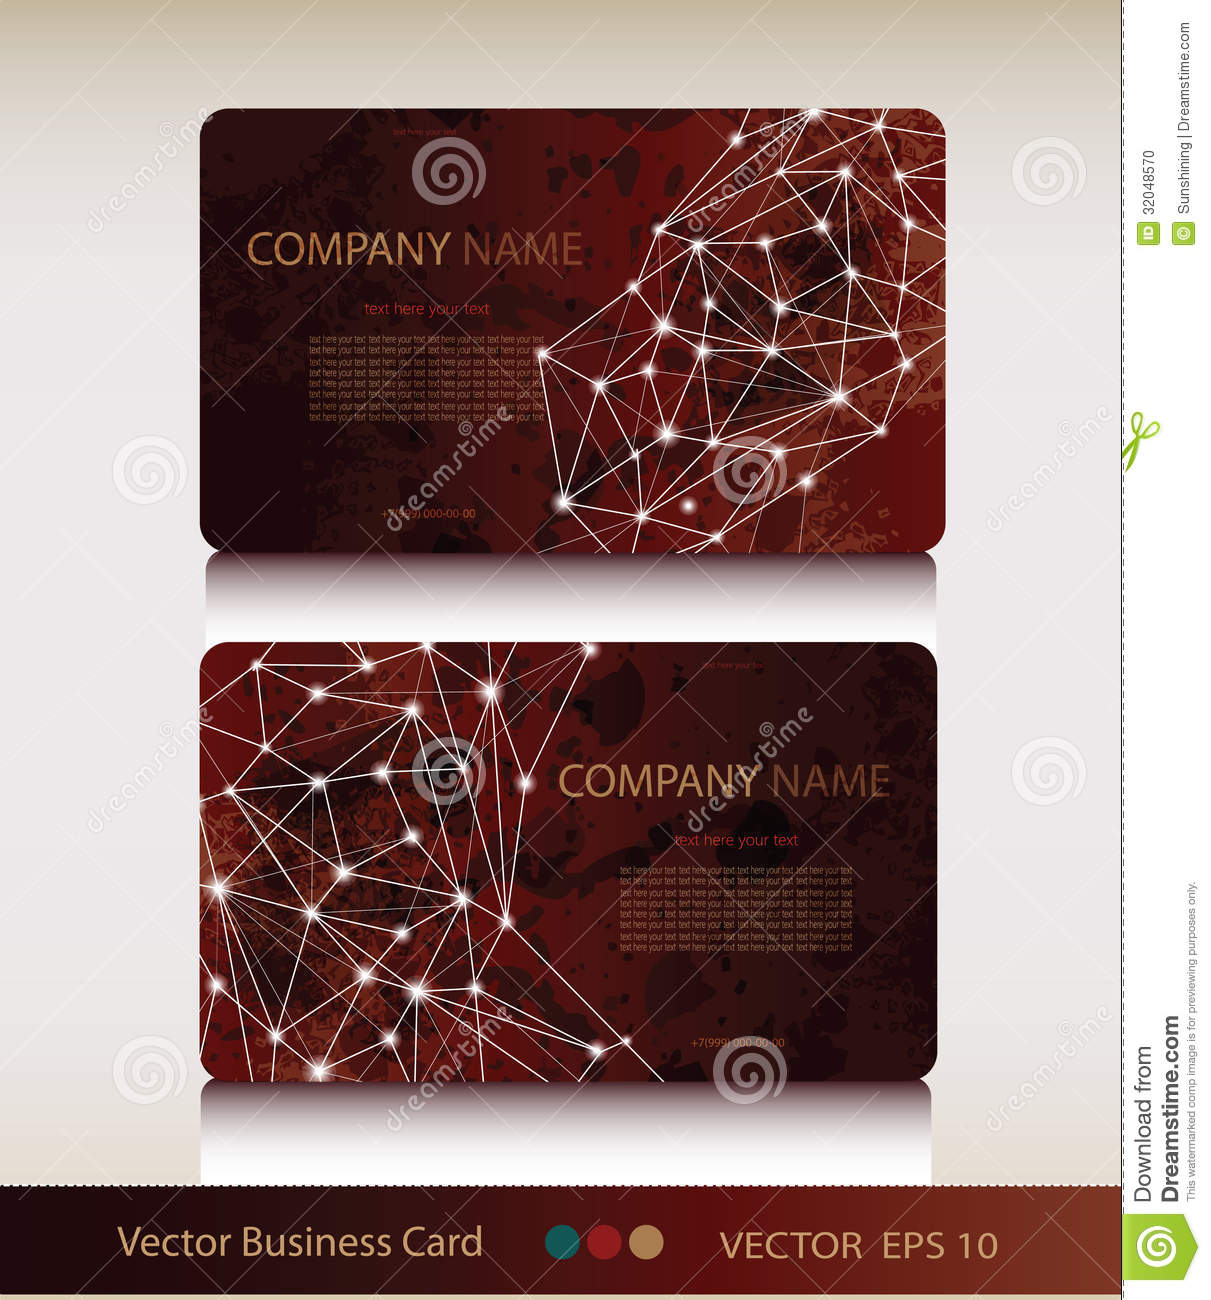 Set of abstract geometric business card stock vector illustration royalty free stock photo colourmoves